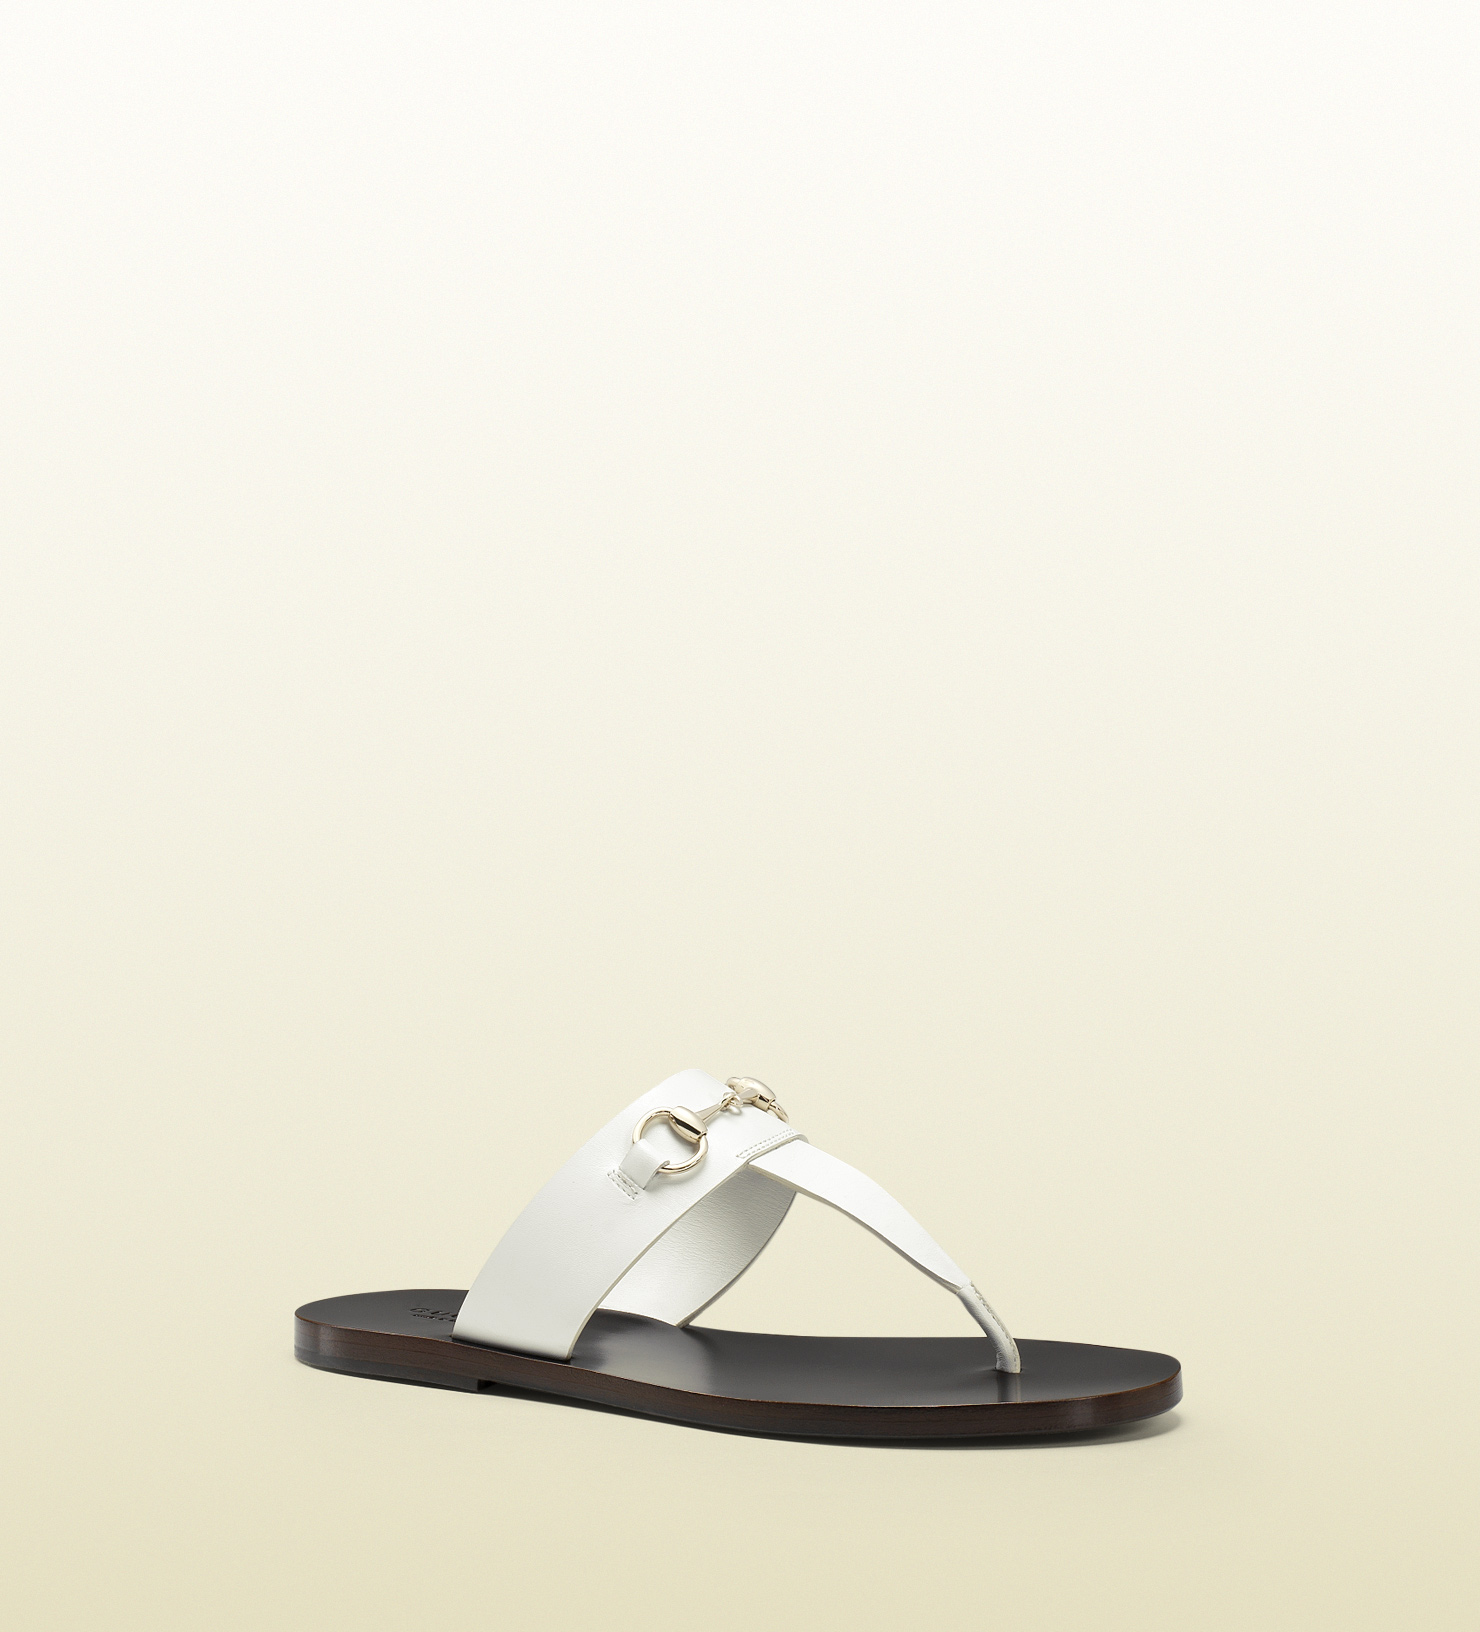 3c75933c4 Gucci Horsebit Leather Thong Sandal in White - Lyst